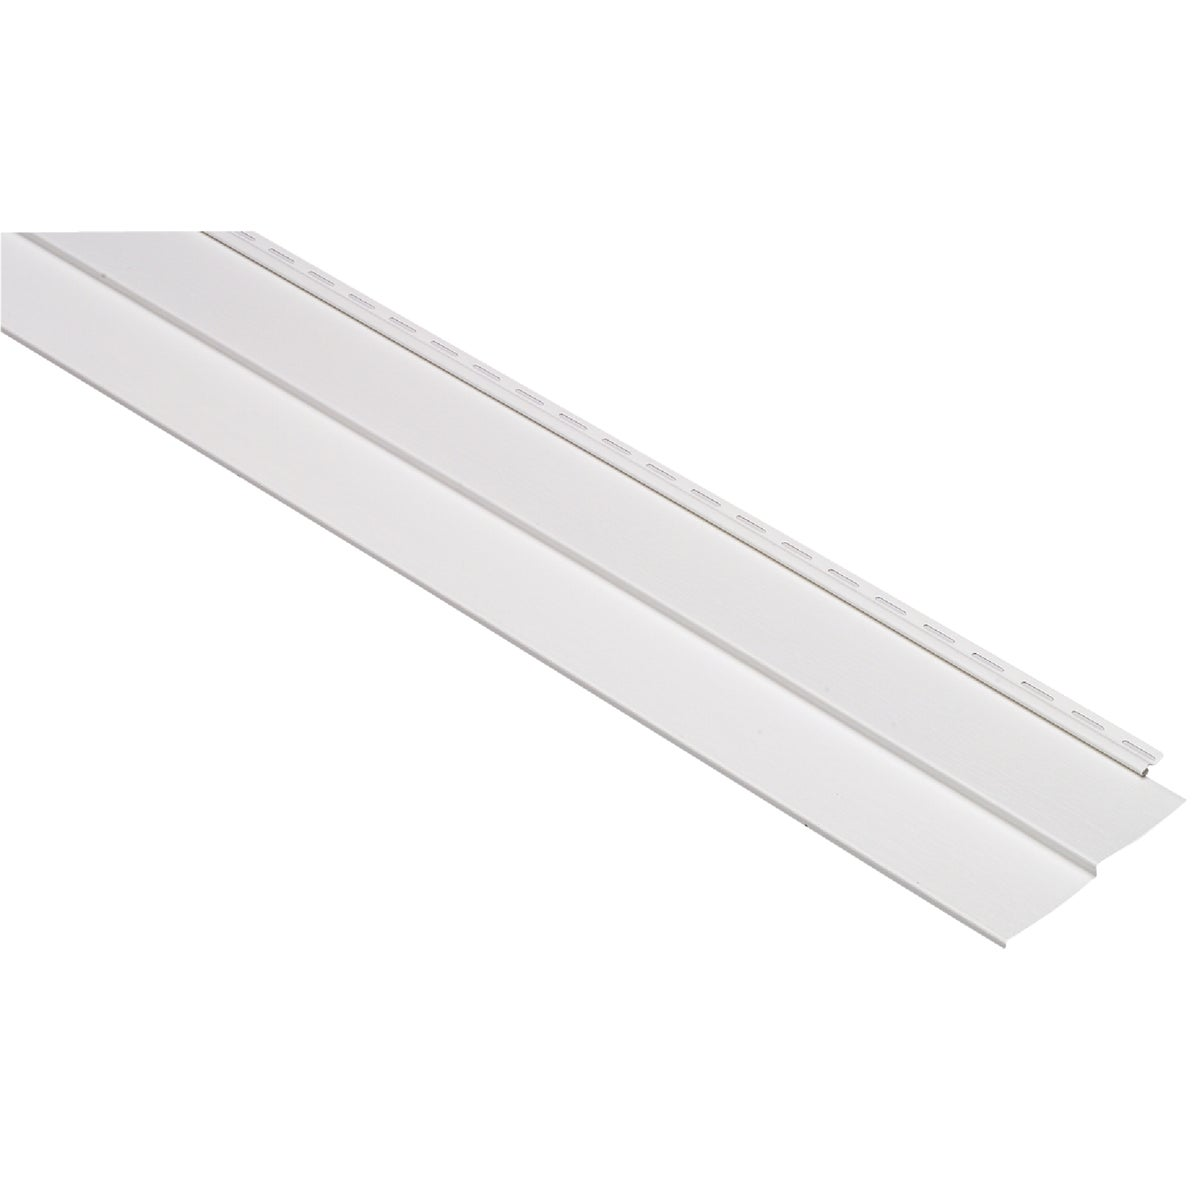 D4 WHITE FR VINYL SIDING - 157166 by Bluelinx